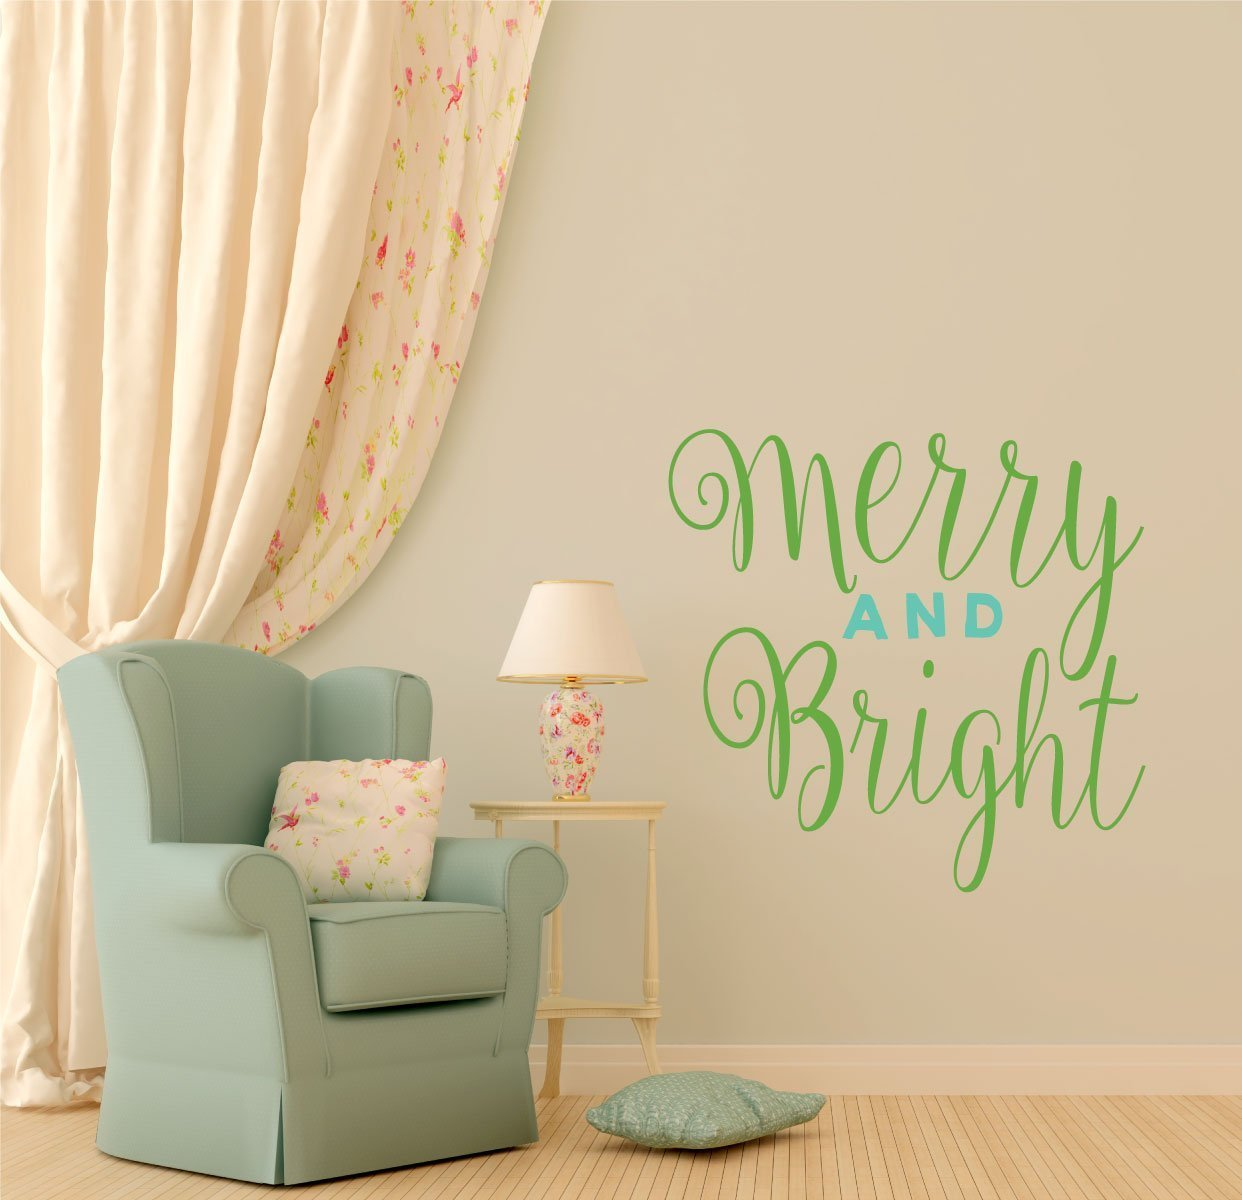 """Wall Decals Christmas Decor """"Merry and Bright"""" Vinyl Lettering for Decorating Home,"""